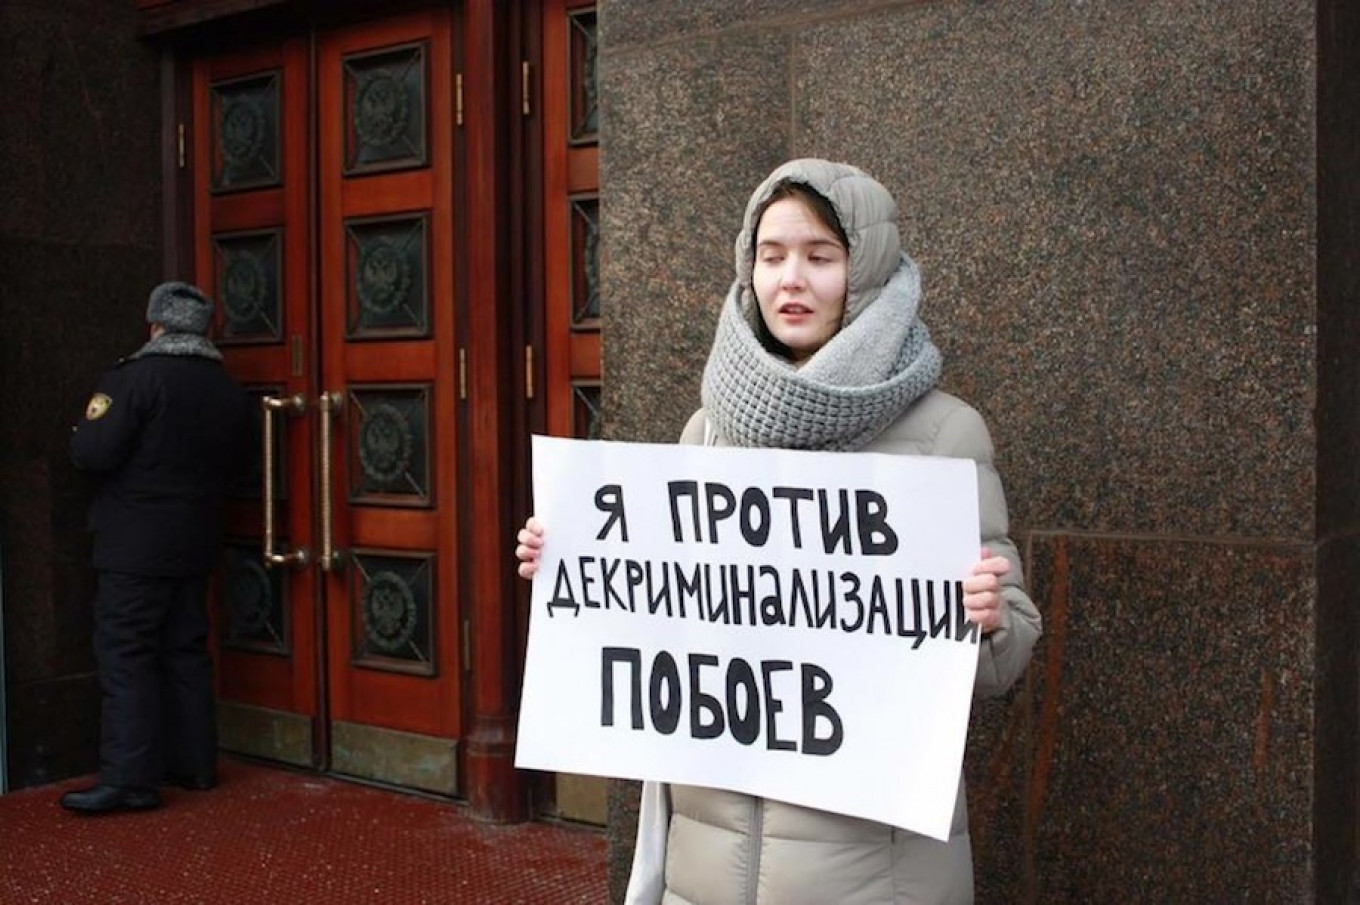 Women's rights activists demonstrated outside State Duma building, hoping lawmakers would reconsider. Elena Plotnikova / TASS